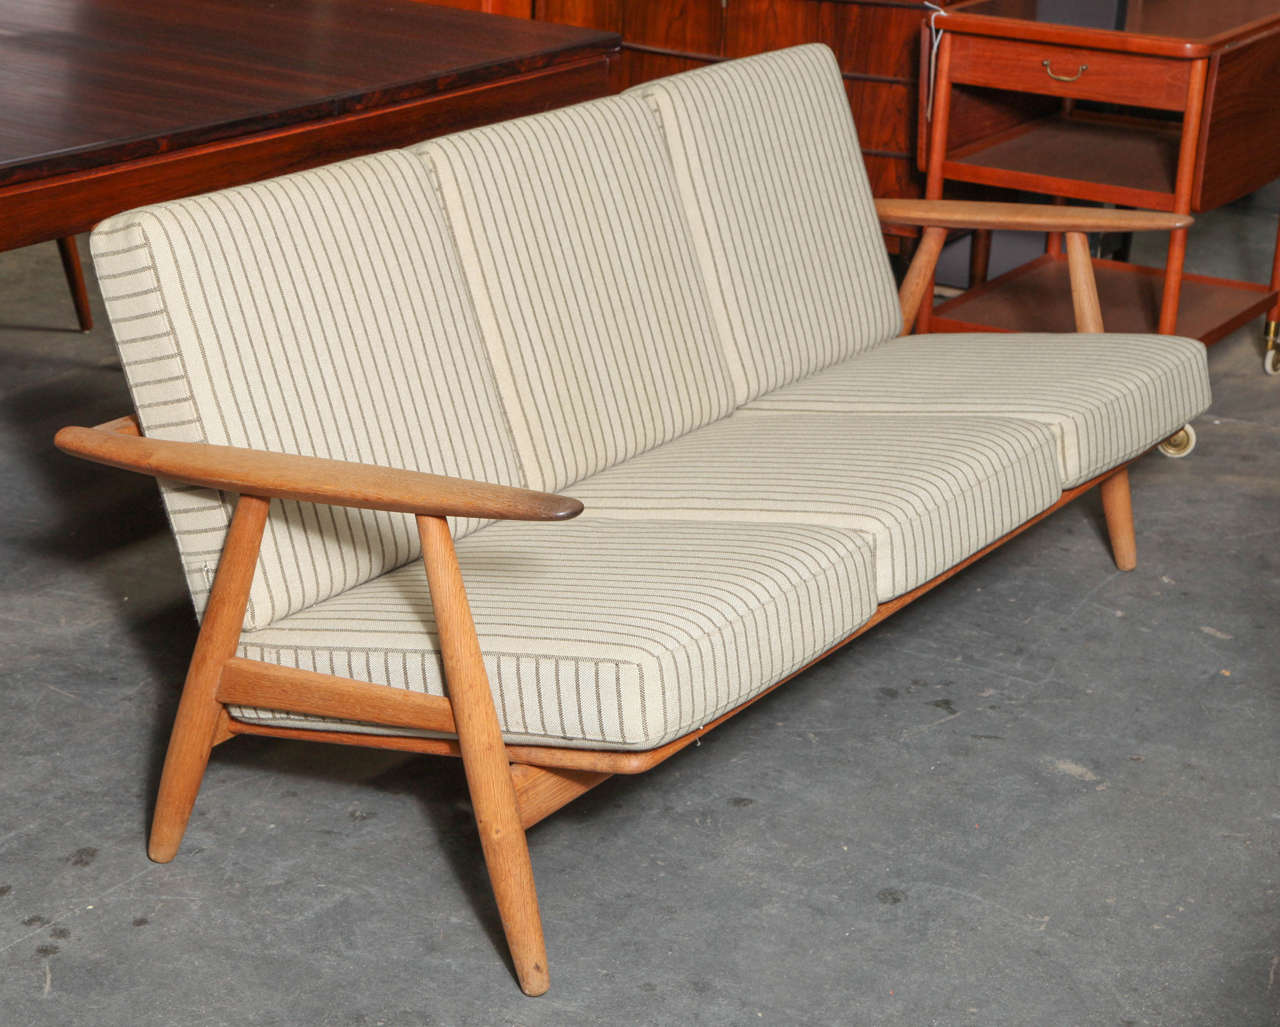 Hans Wegner GE 240 Cigar Arm Sofa By GETAMA 2